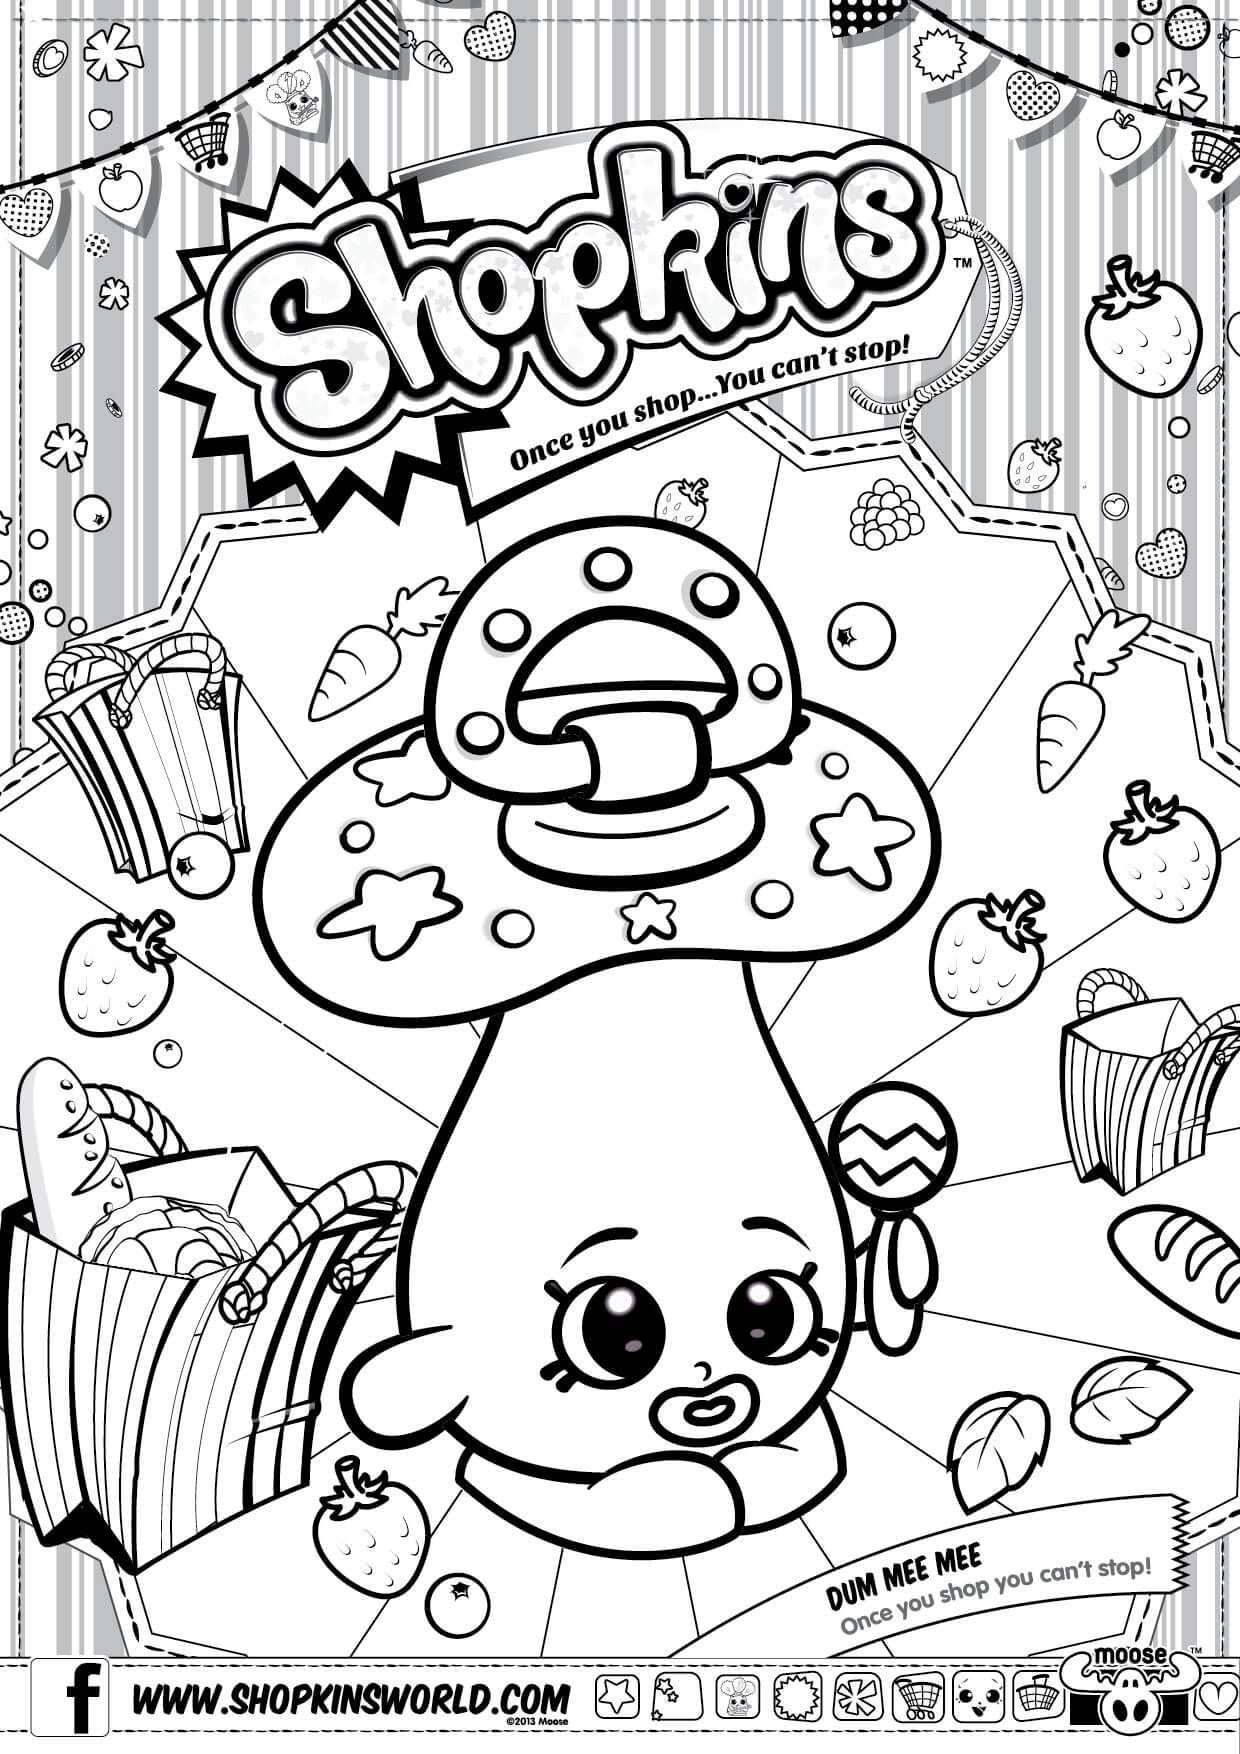 Shopkins Coloring Pages Season 2 Dum Mee Mee | INFANTIL | Pinterest ...